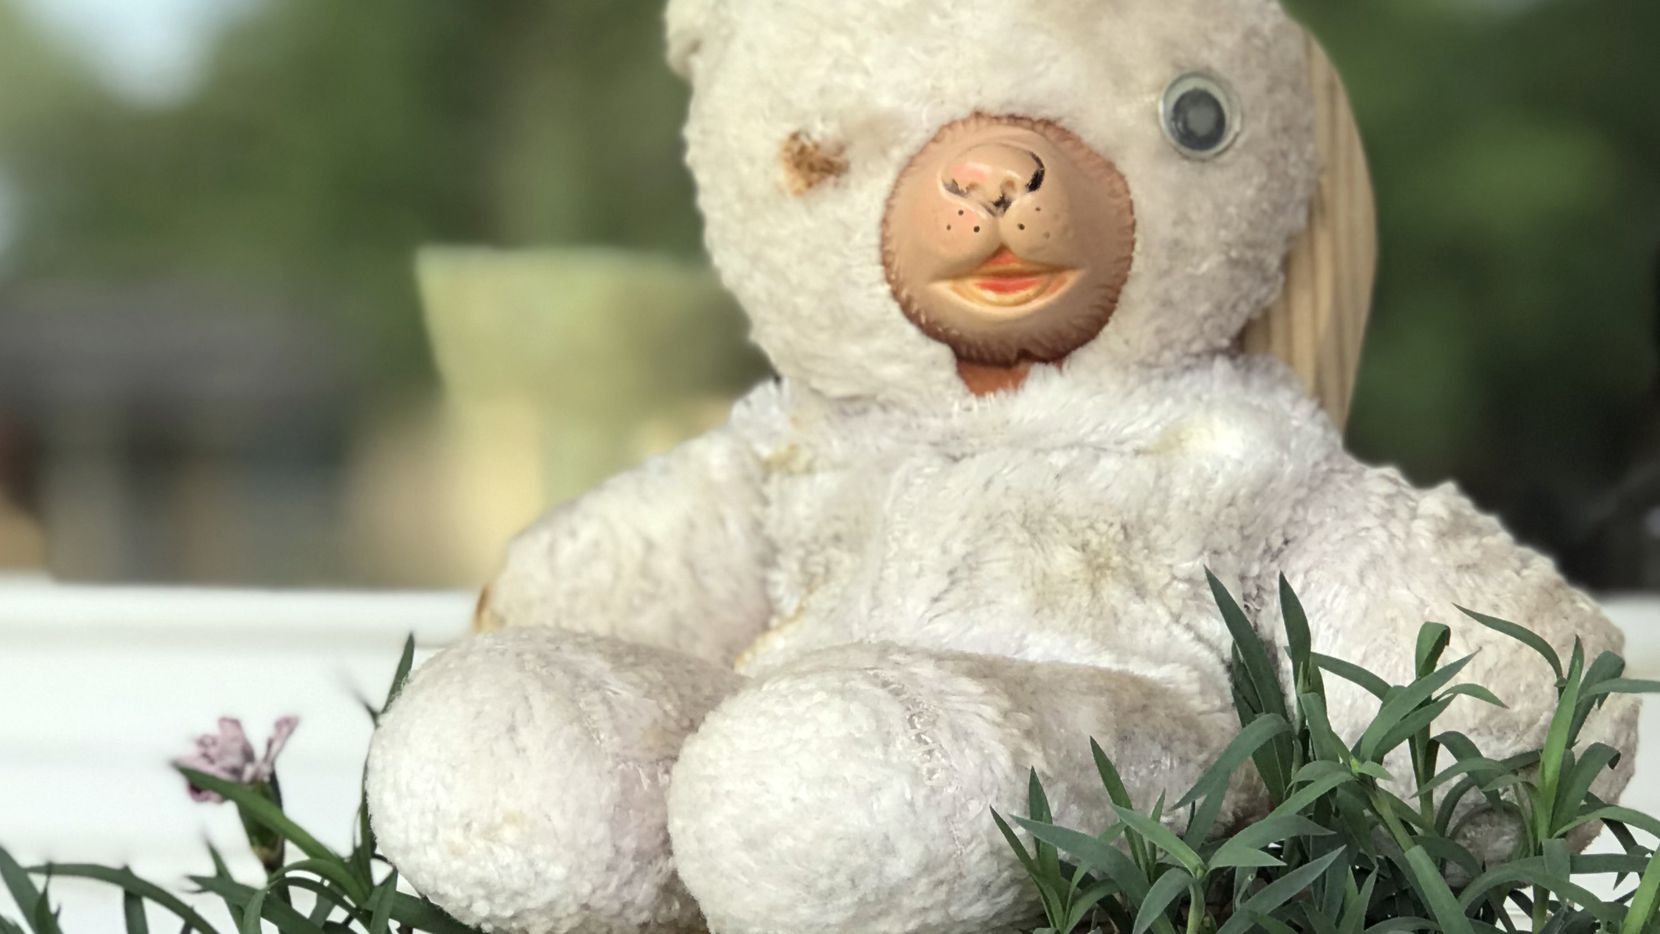 Ron Siebler placed his old teddy bear in front of his house for passing children to spy.